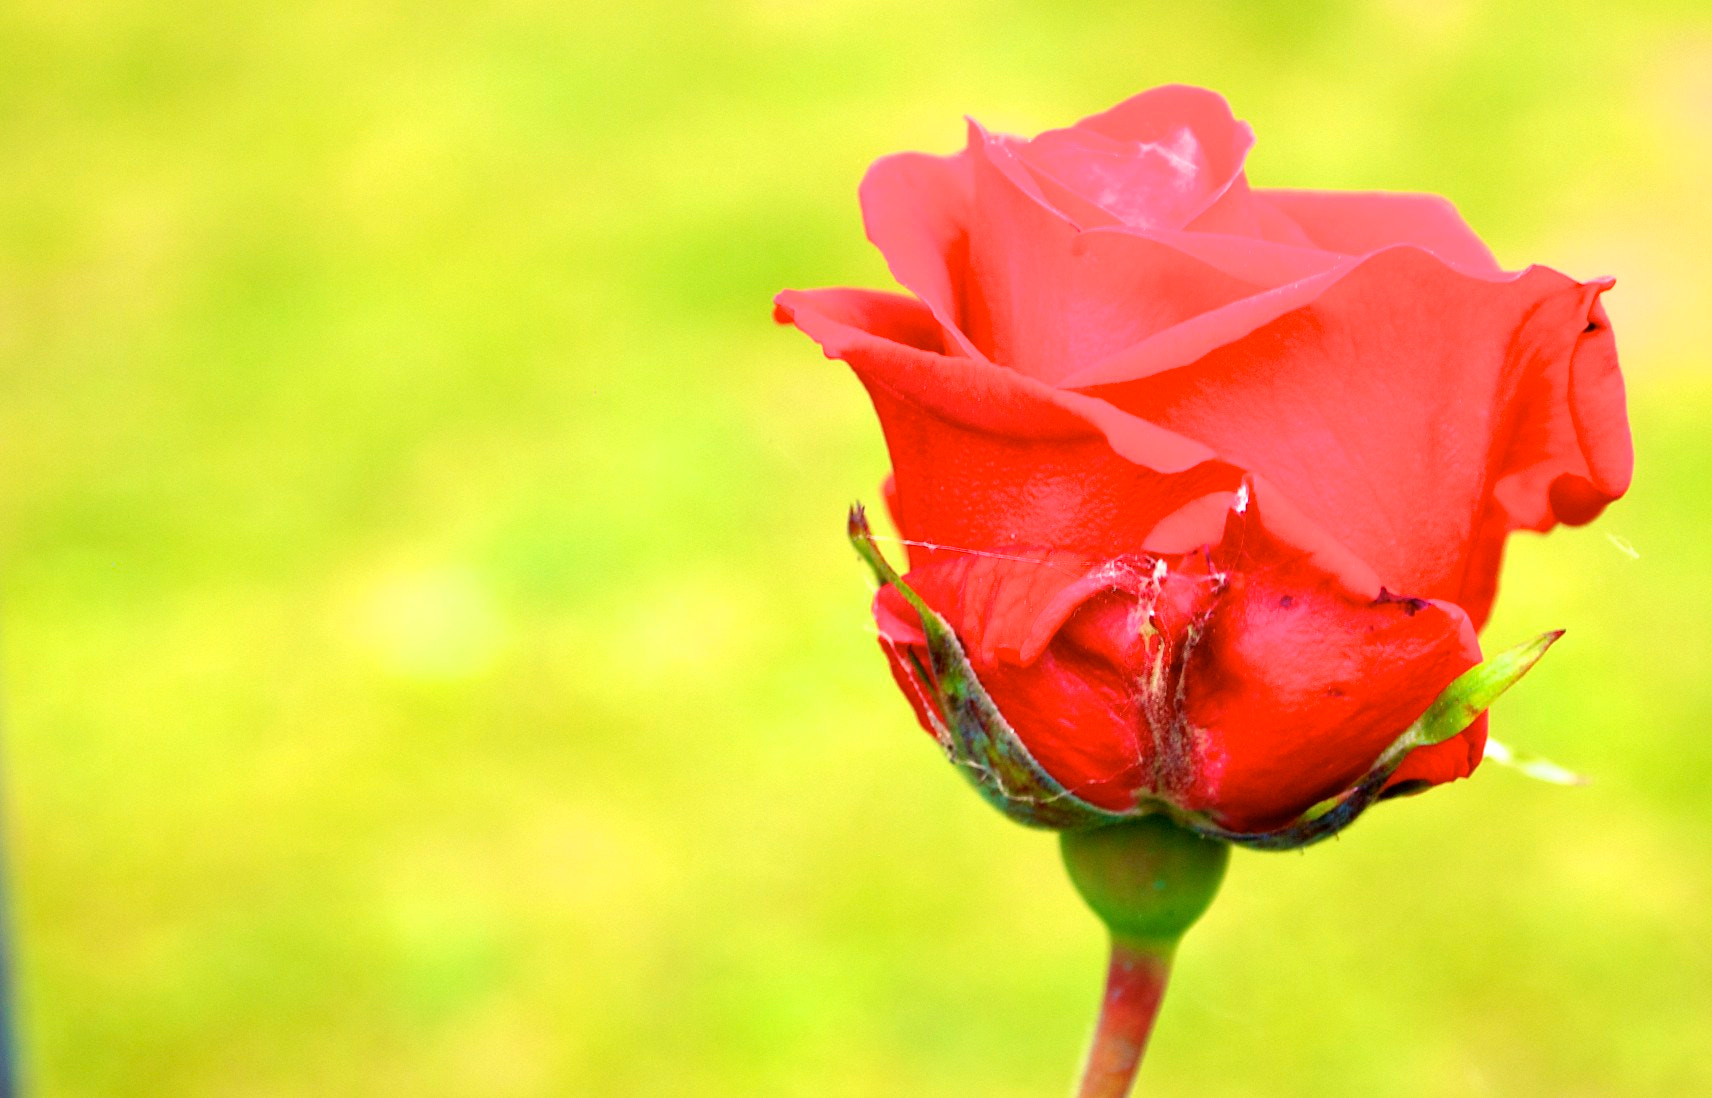 Photograph raw rose by Clay Bass on 500px